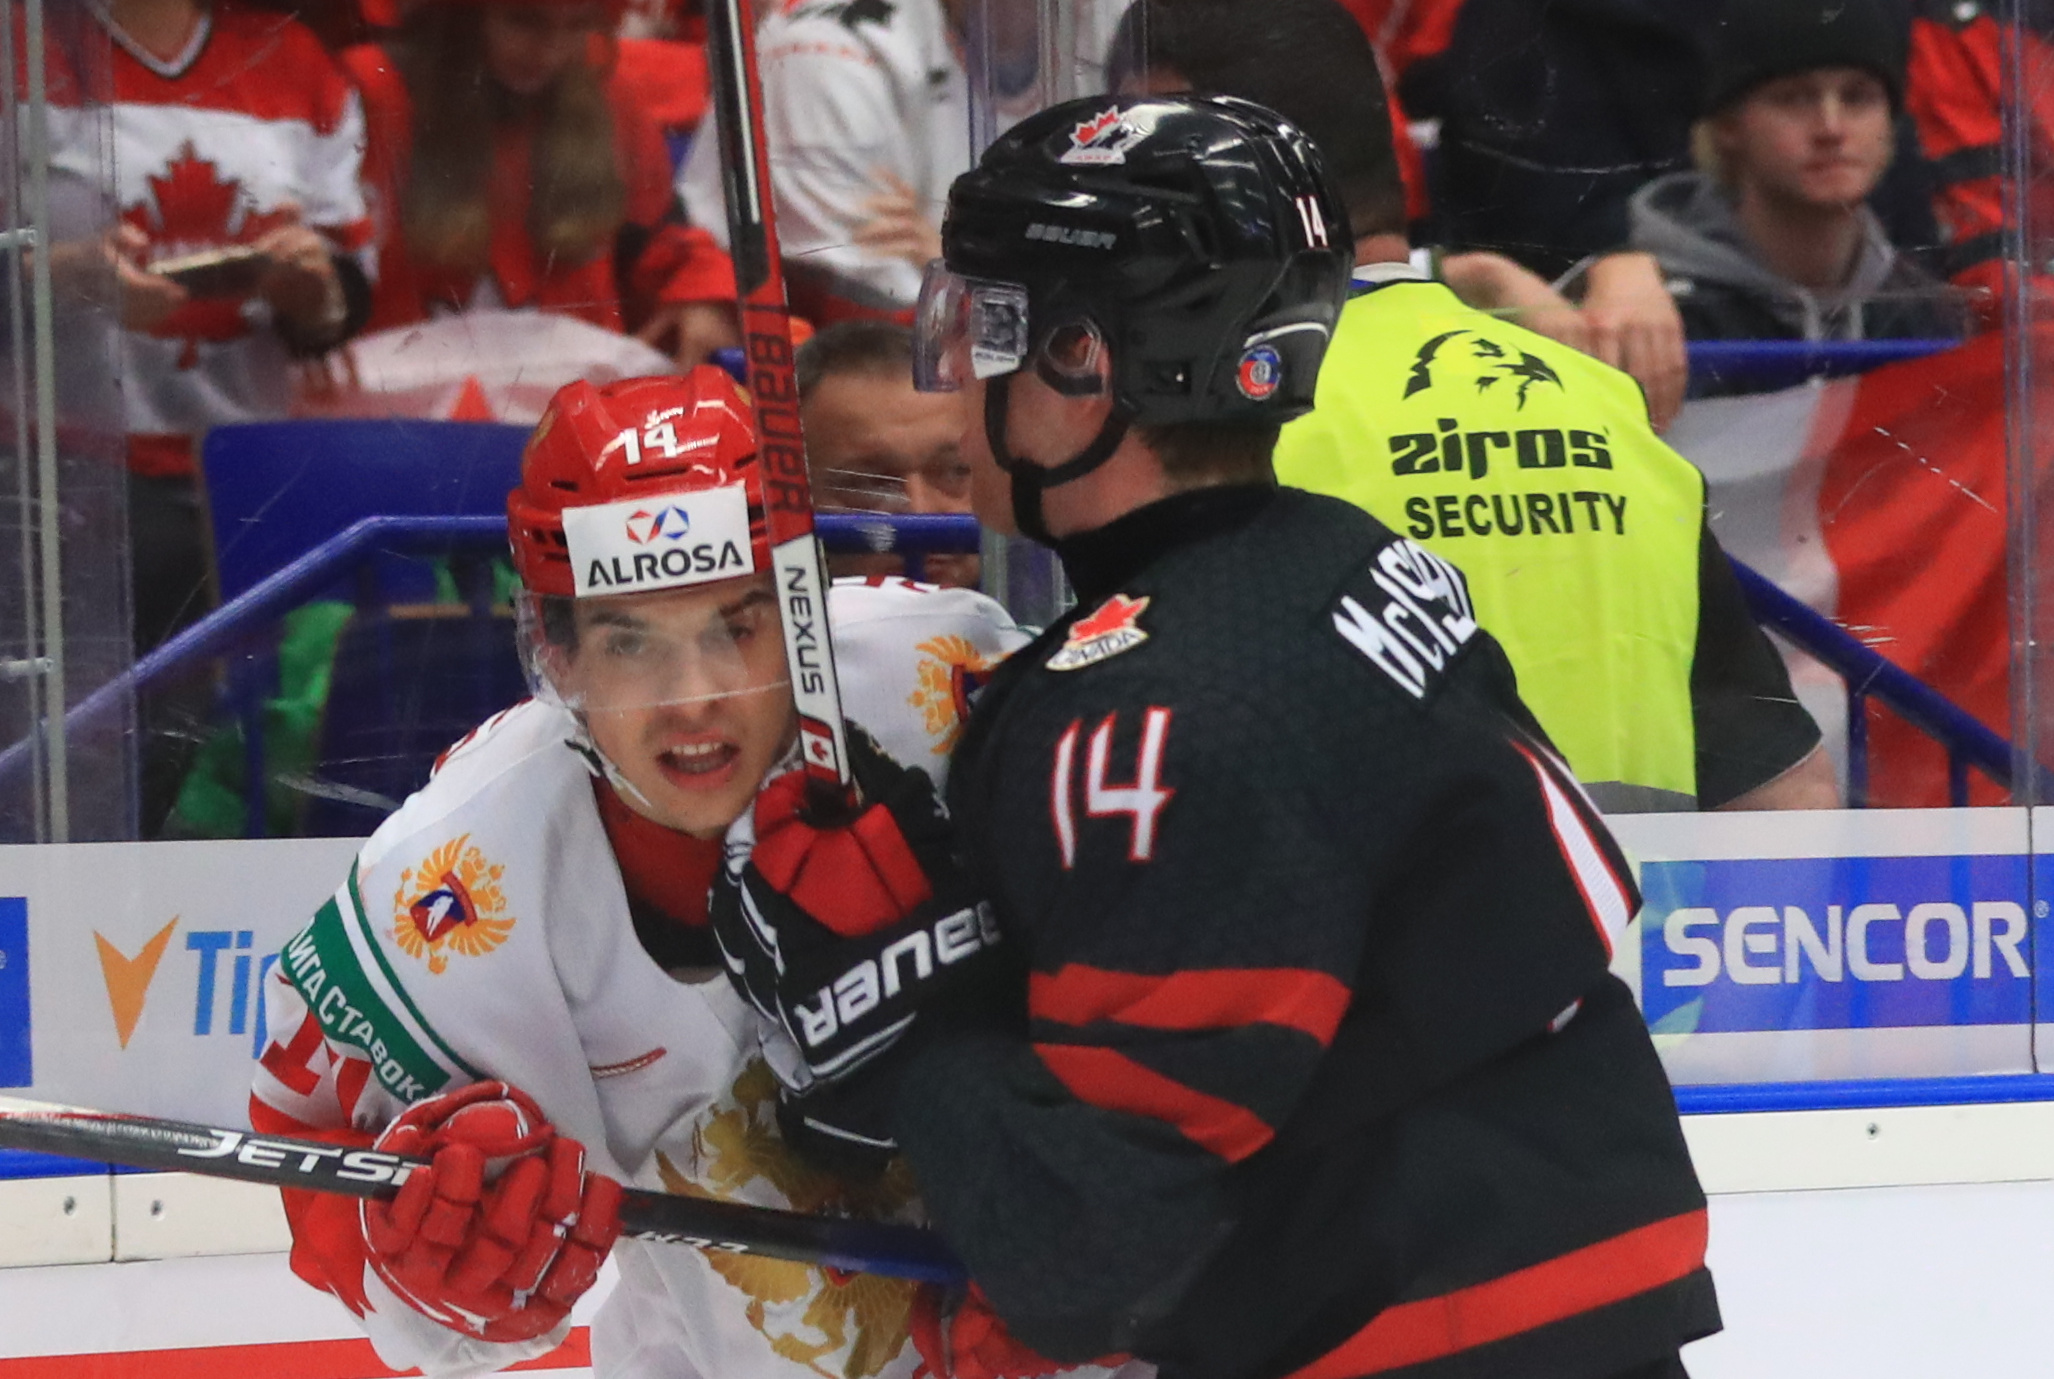 OSTRAVA, CZECH REPUBLIC - JANUARY 5, 2020: Russia's Grigory Denisenko (L) and Canada's Jared McIsaac in the 2020 World Junior Ice Hockey Championship final match between Canada and Russia at Ostravar Arena.